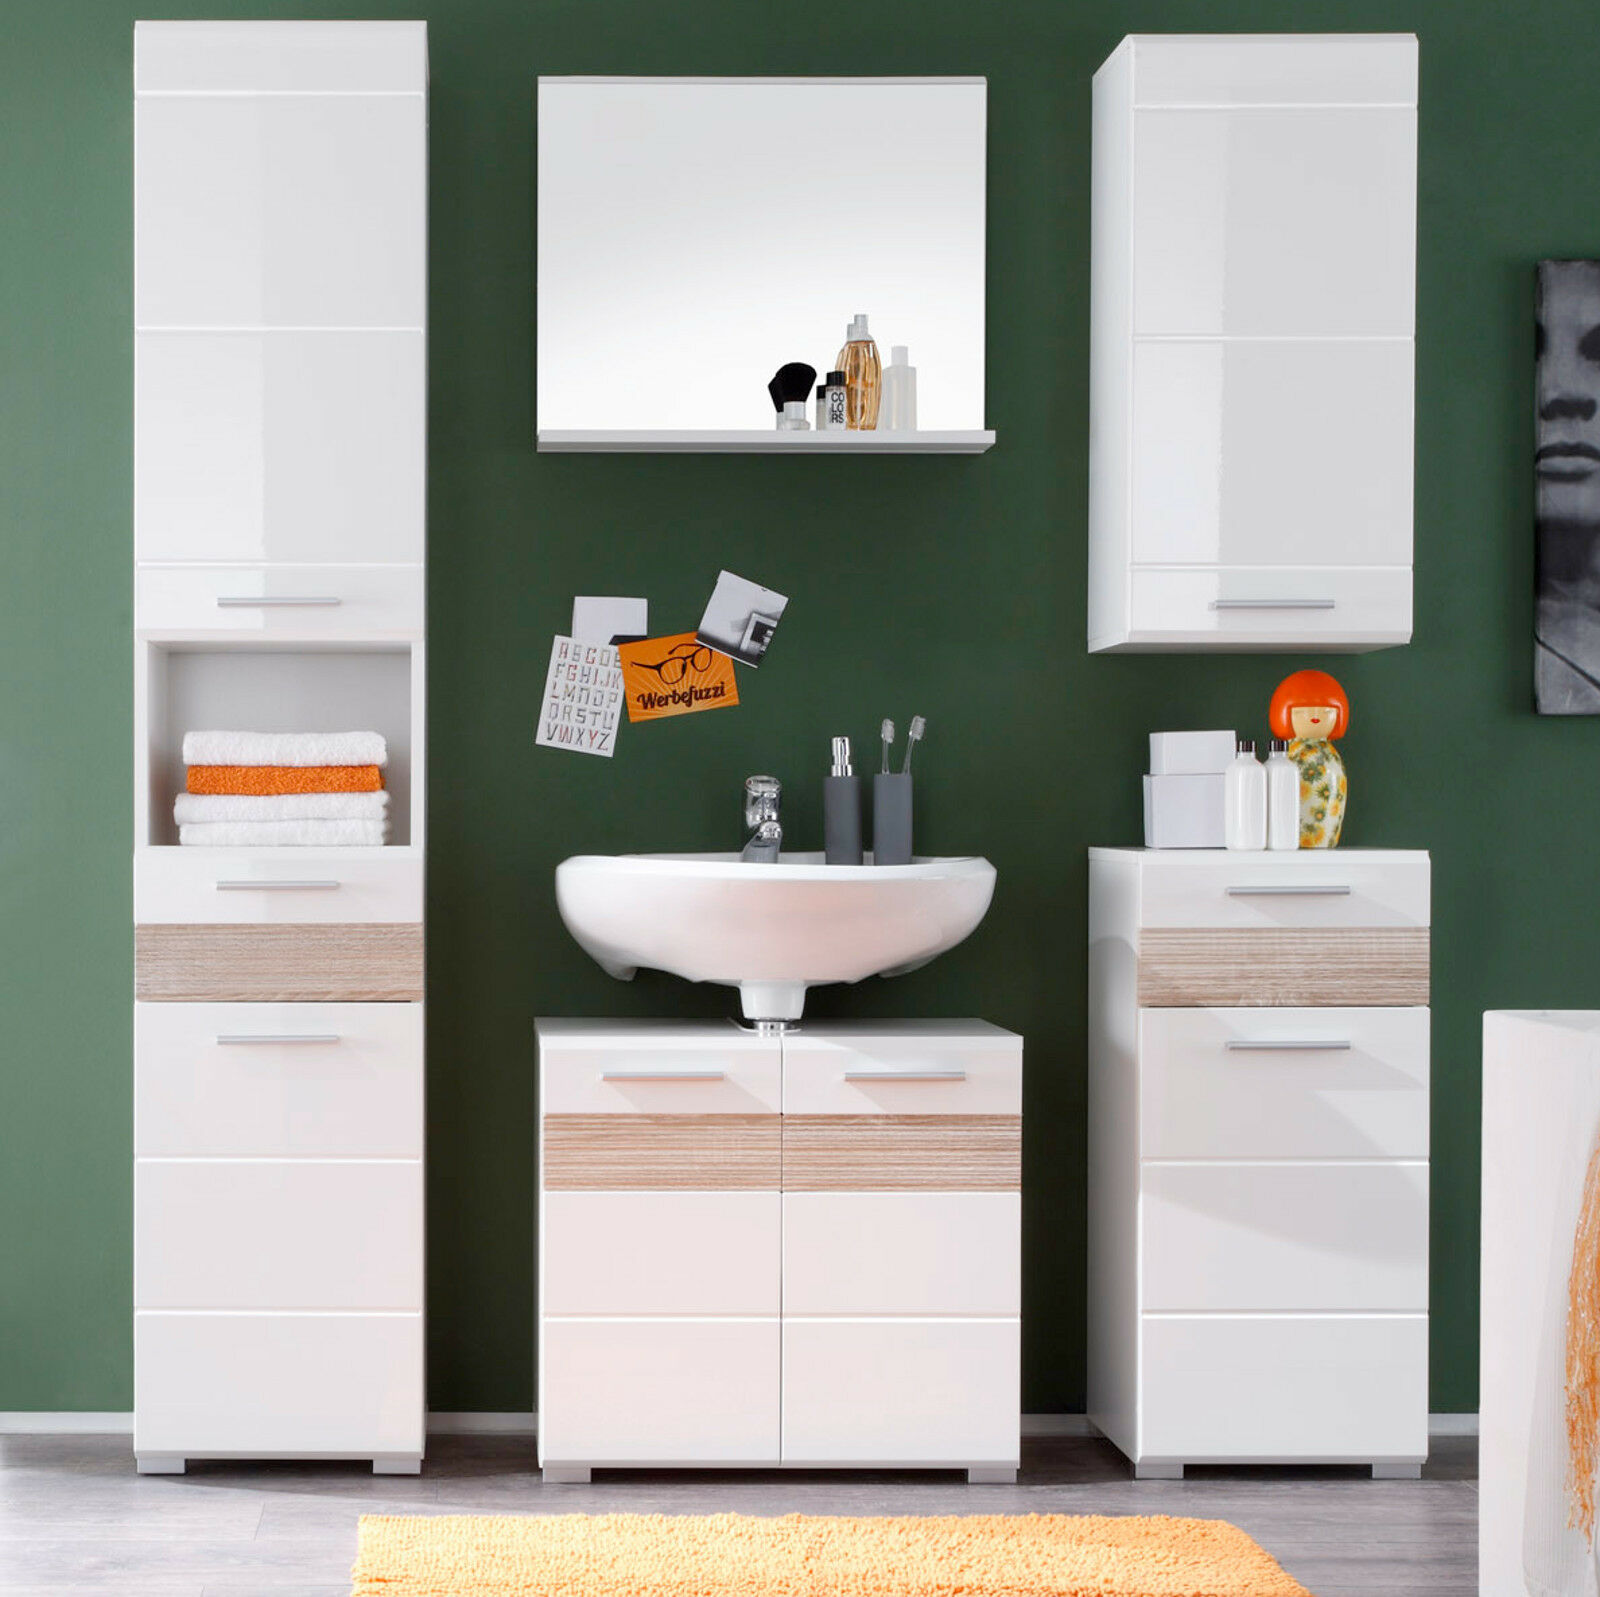 bad schrank unterschrank mezzo in weiss hochglanz eiche hell badezimmer kommode eur 69 99. Black Bedroom Furniture Sets. Home Design Ideas